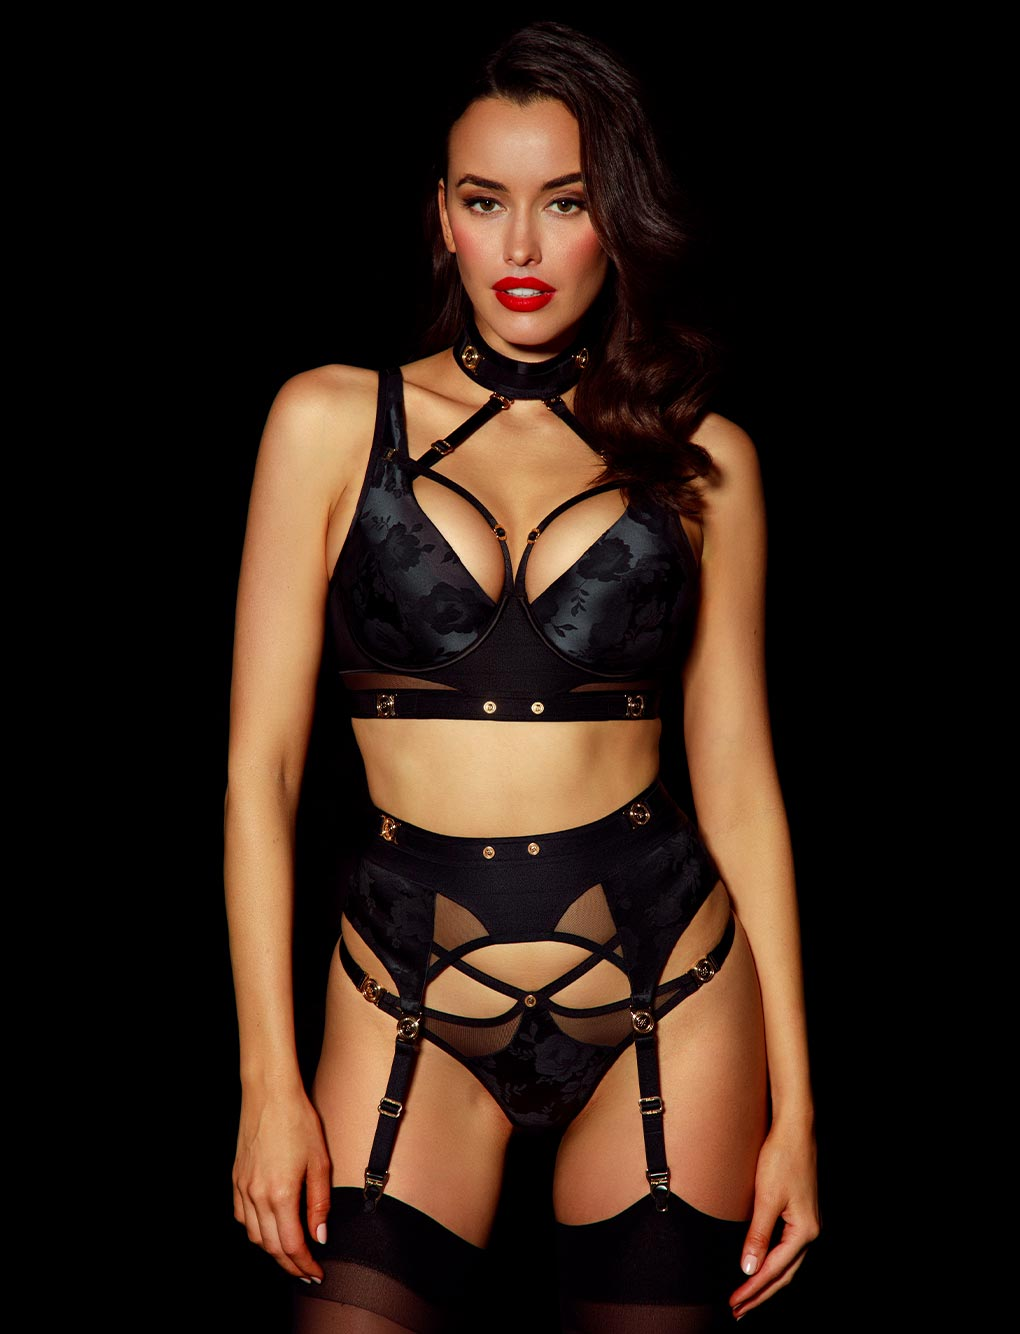 Martika Suspender | Shop Suspenders | Honey Birdette